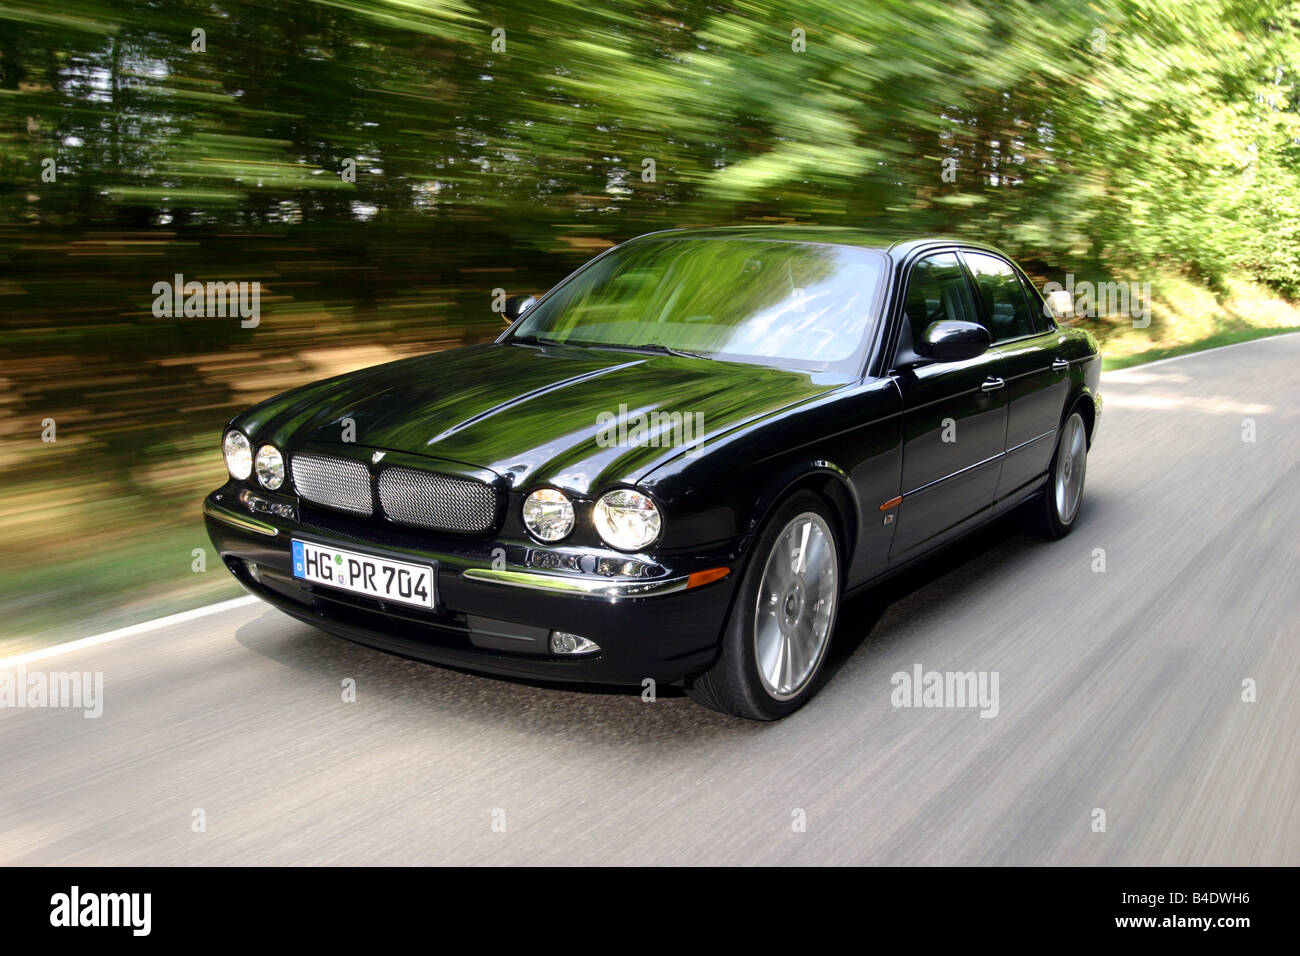 Car, Jaguar XJ R, Limousine, Luxury Approx.s, Model Year 2003 , Black,  Driving, Country Road, Diagonal From The Front, Front Vie